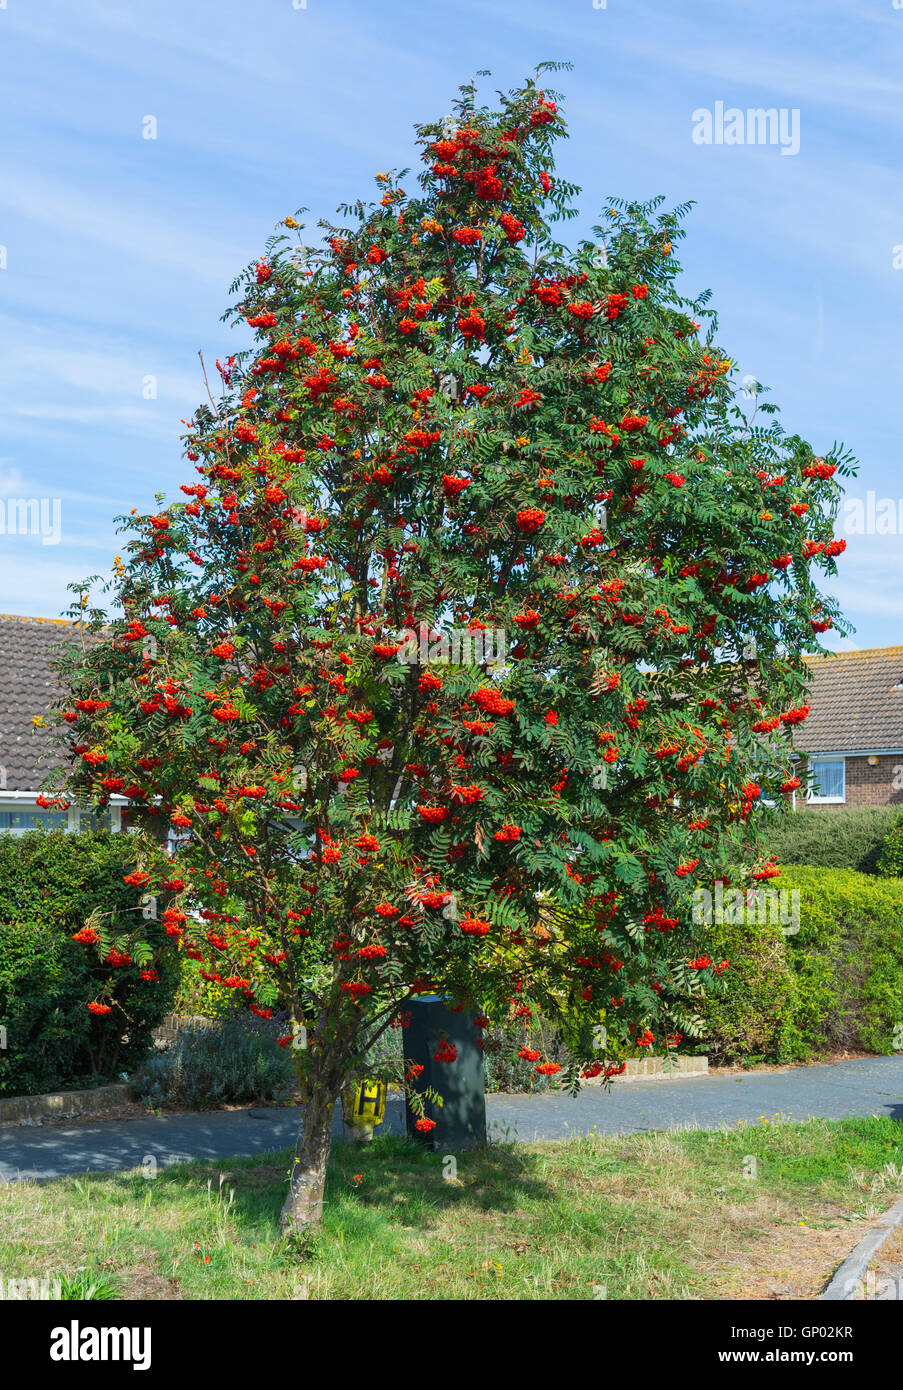 Rowan tree (Sorbus aucuparia, Mountain Ash tree) by the side of the road in a residential area in England, UK. - Stock Image